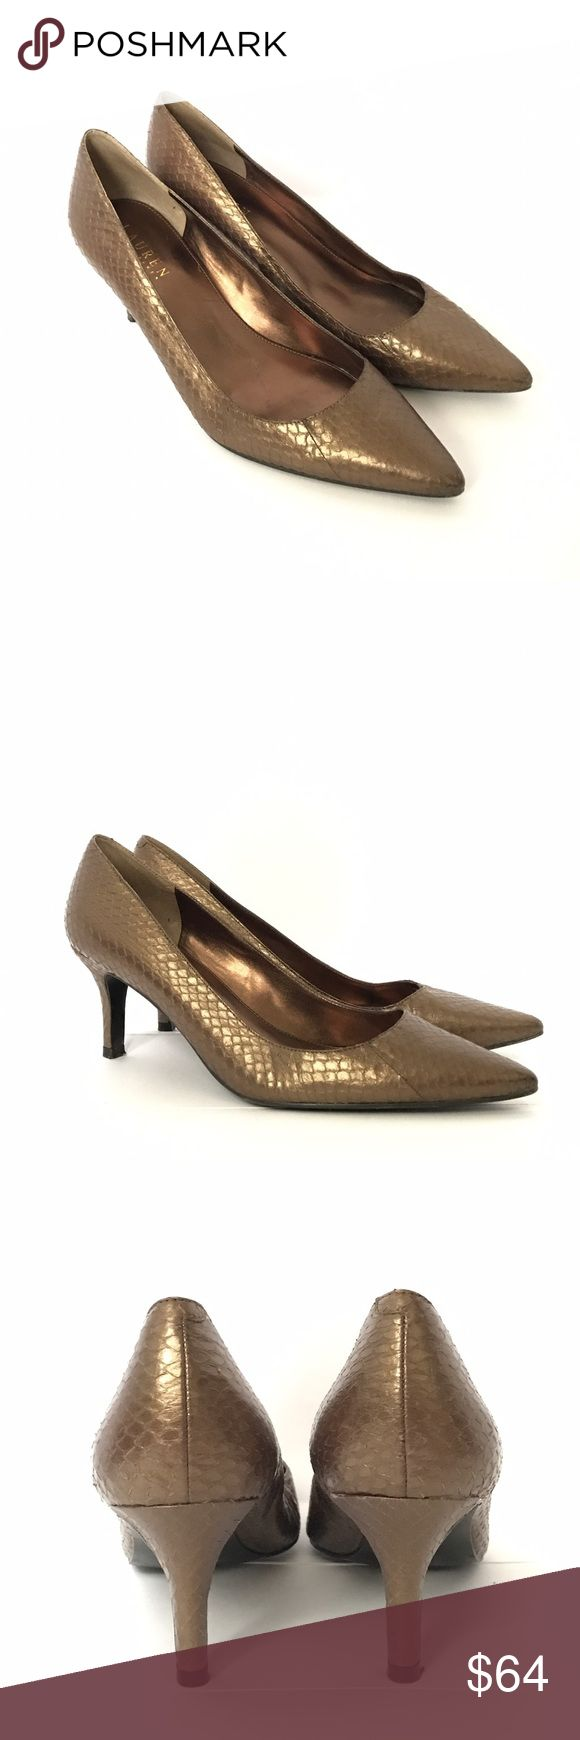 "RALP LAUREN Pumps Gently used in great condition. Snakeskin metallic brown pumps. Heel height is 2.8"" very comfy and elegant. Lauren Ralph Lauren Shoes Heels"